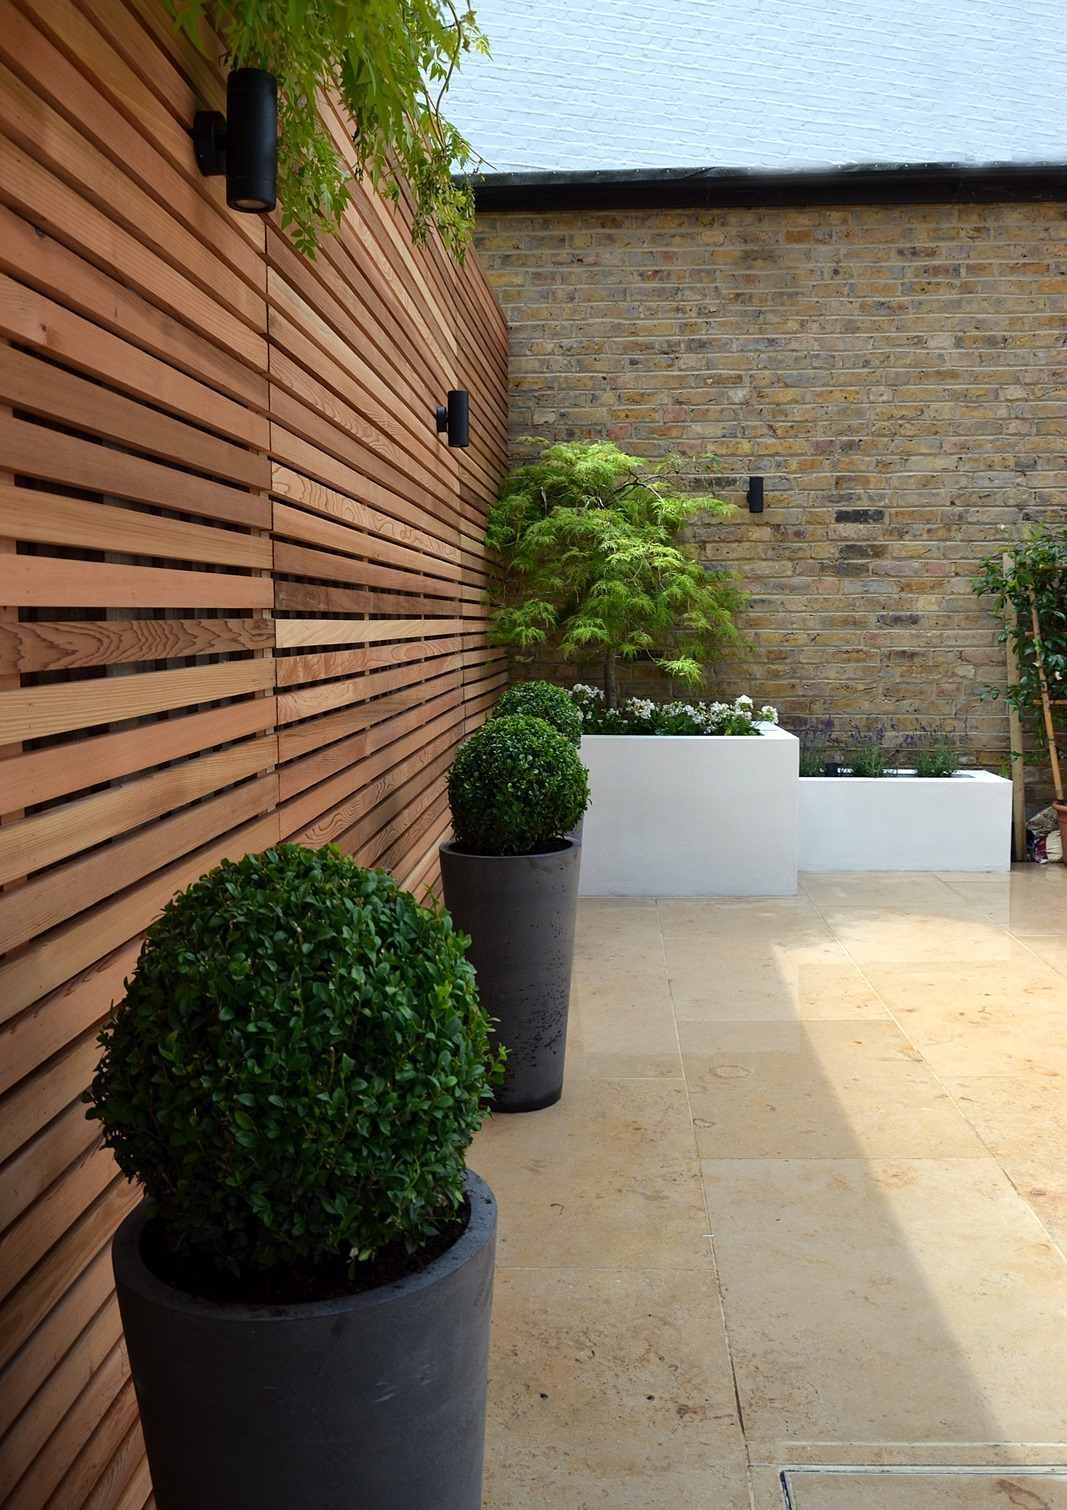 cedar screen raised planter bed limestone paving hardwood bench clapham london (2)